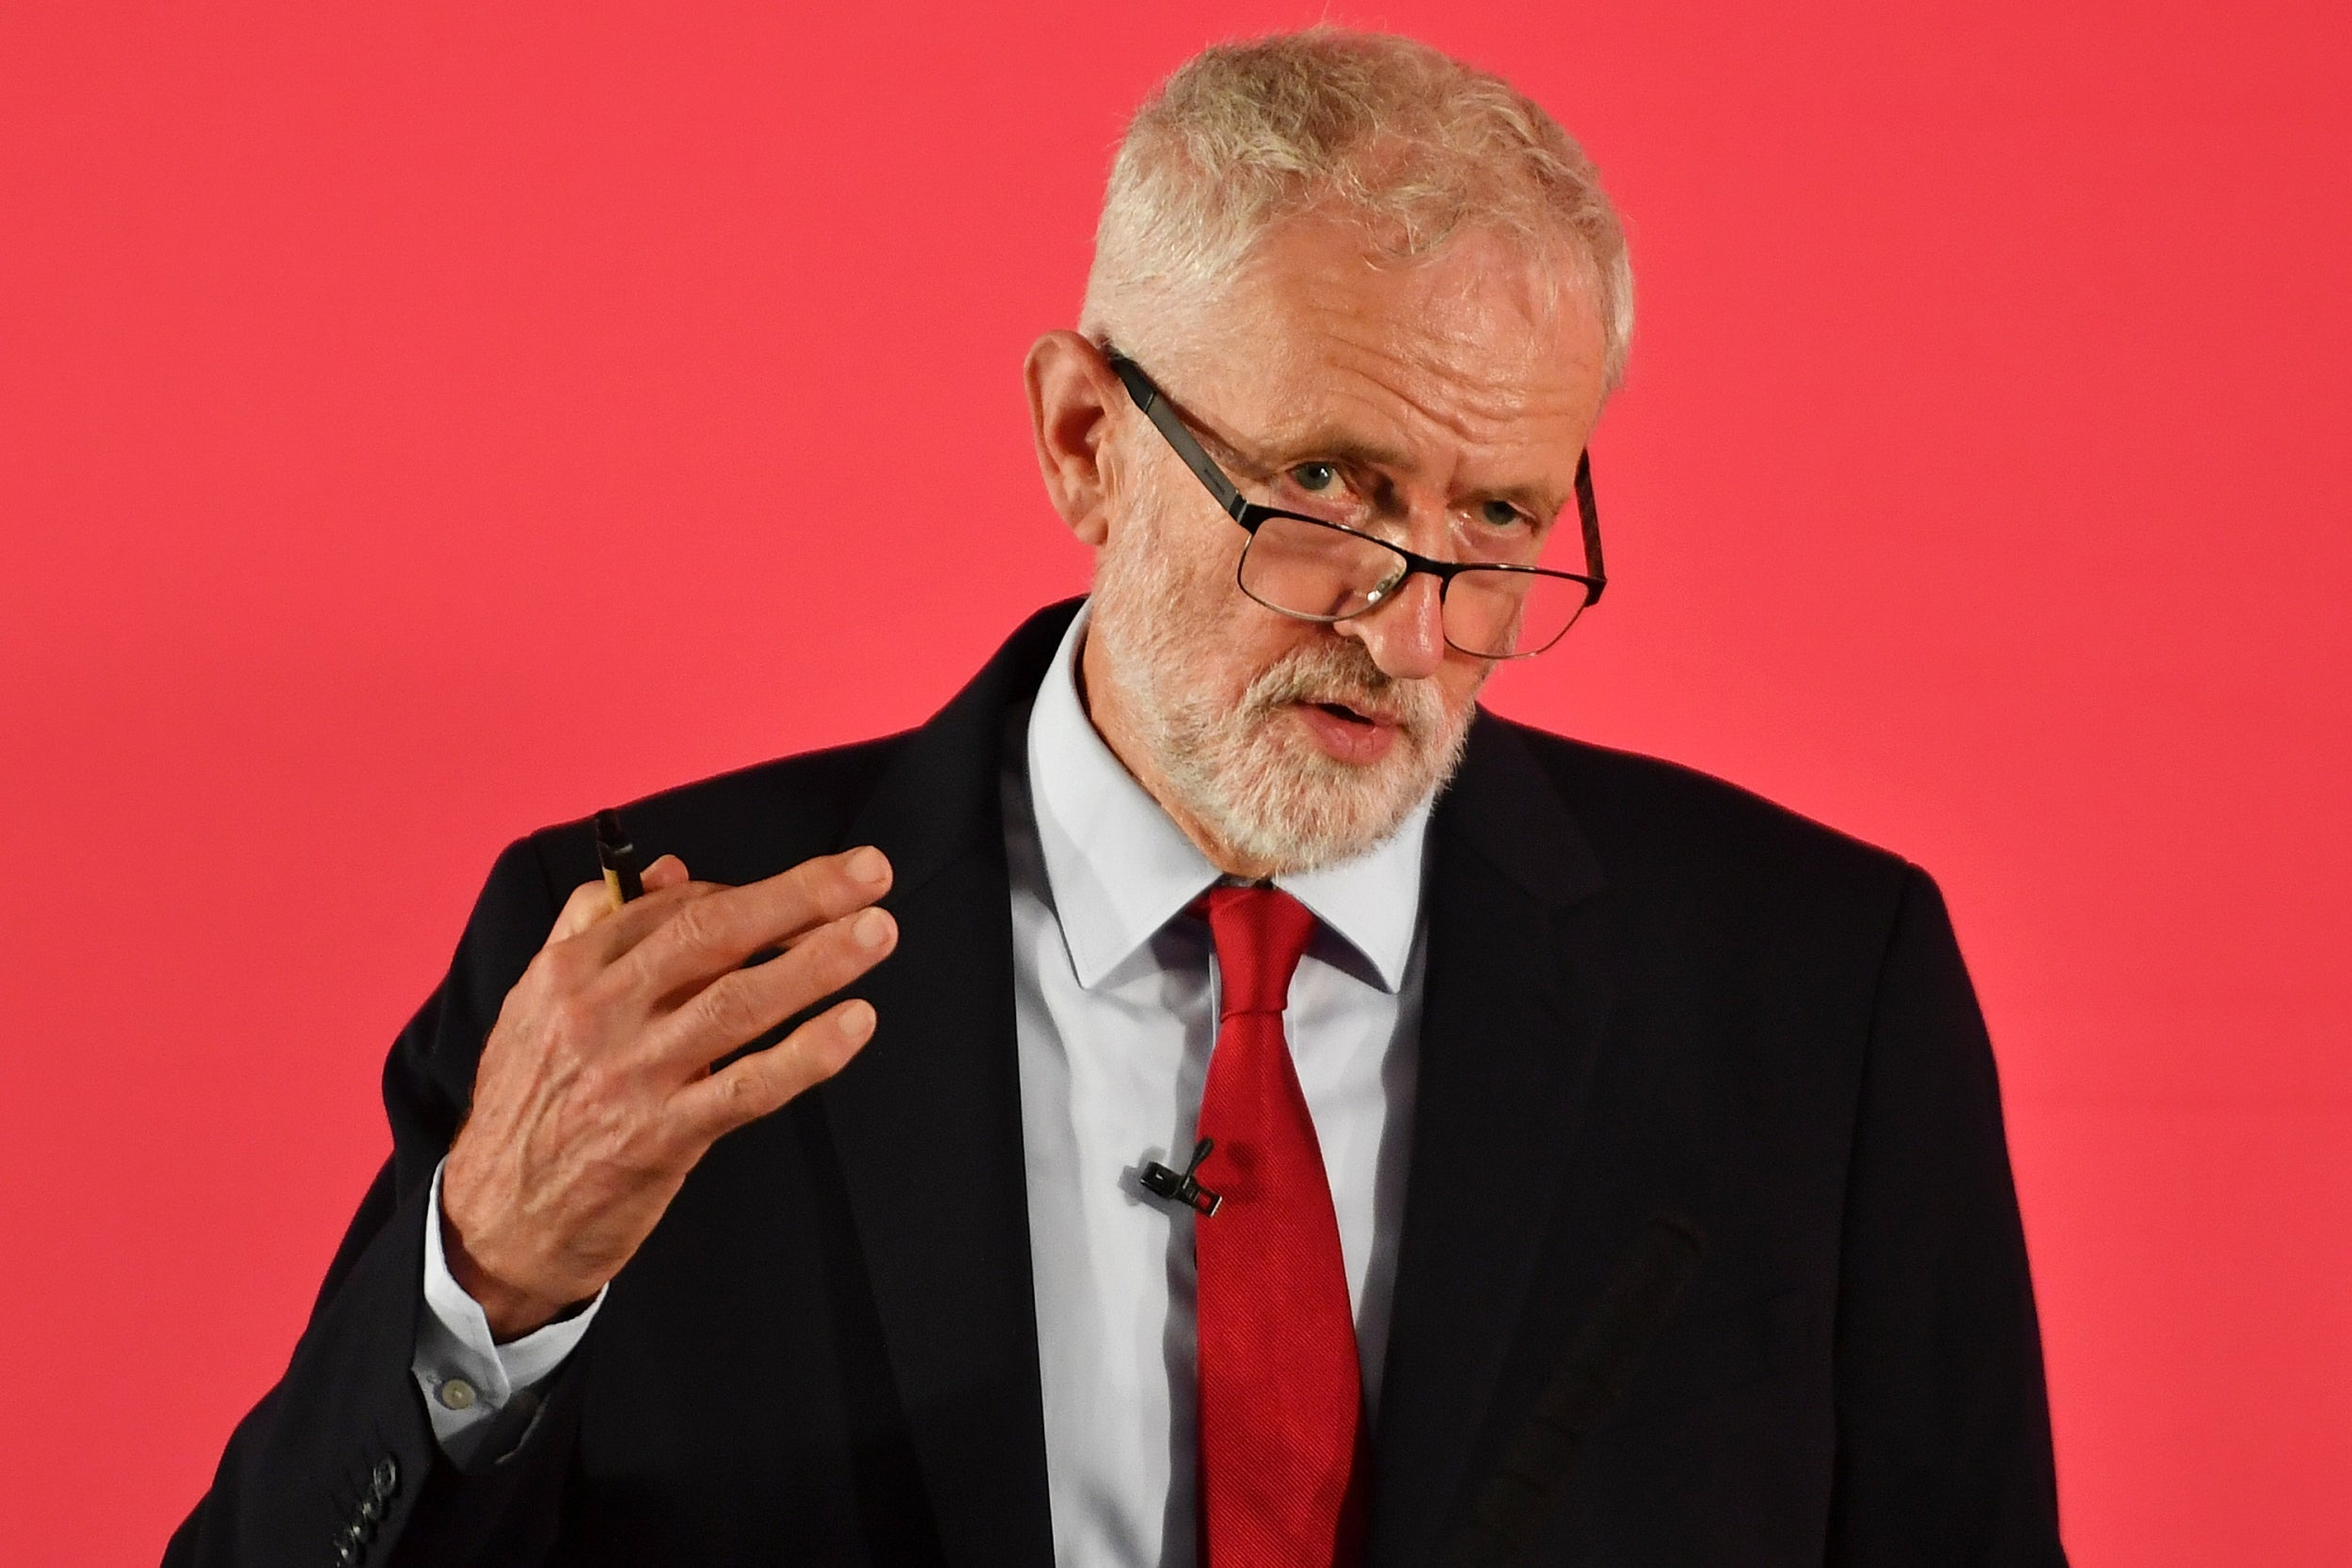 Jeremy Corbyn announces plans to let staff prosecute bosses and £10 minimum wage in 'biggest extension of workers rights' in British history